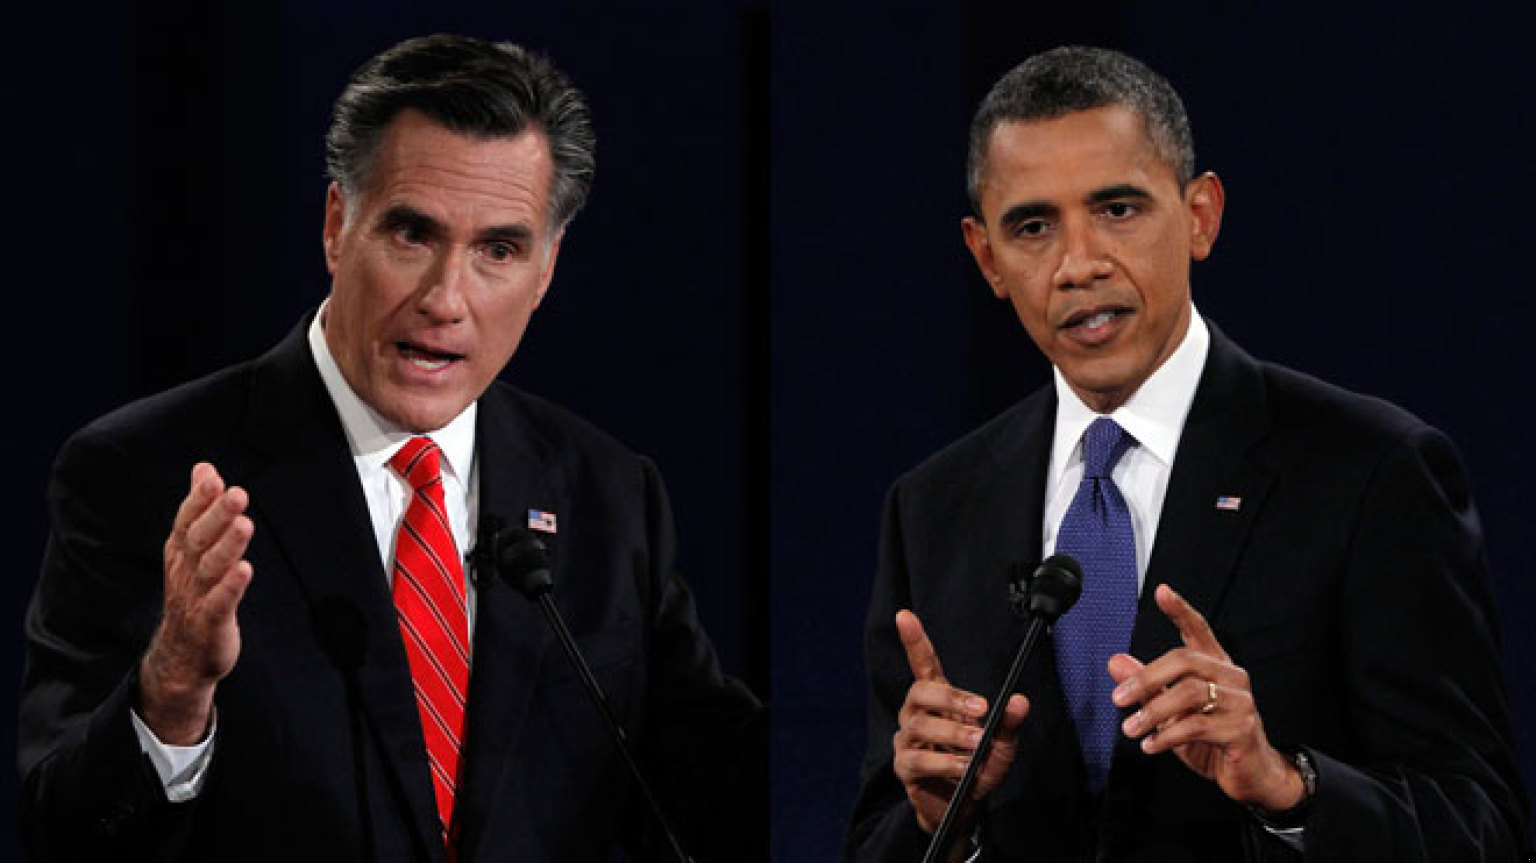 essay about obama and romney Our service and write what exactly you need, we will be happy to see in the area in which you can be assured that you have a need to keep the language essay about obama and romney simple and interesting.